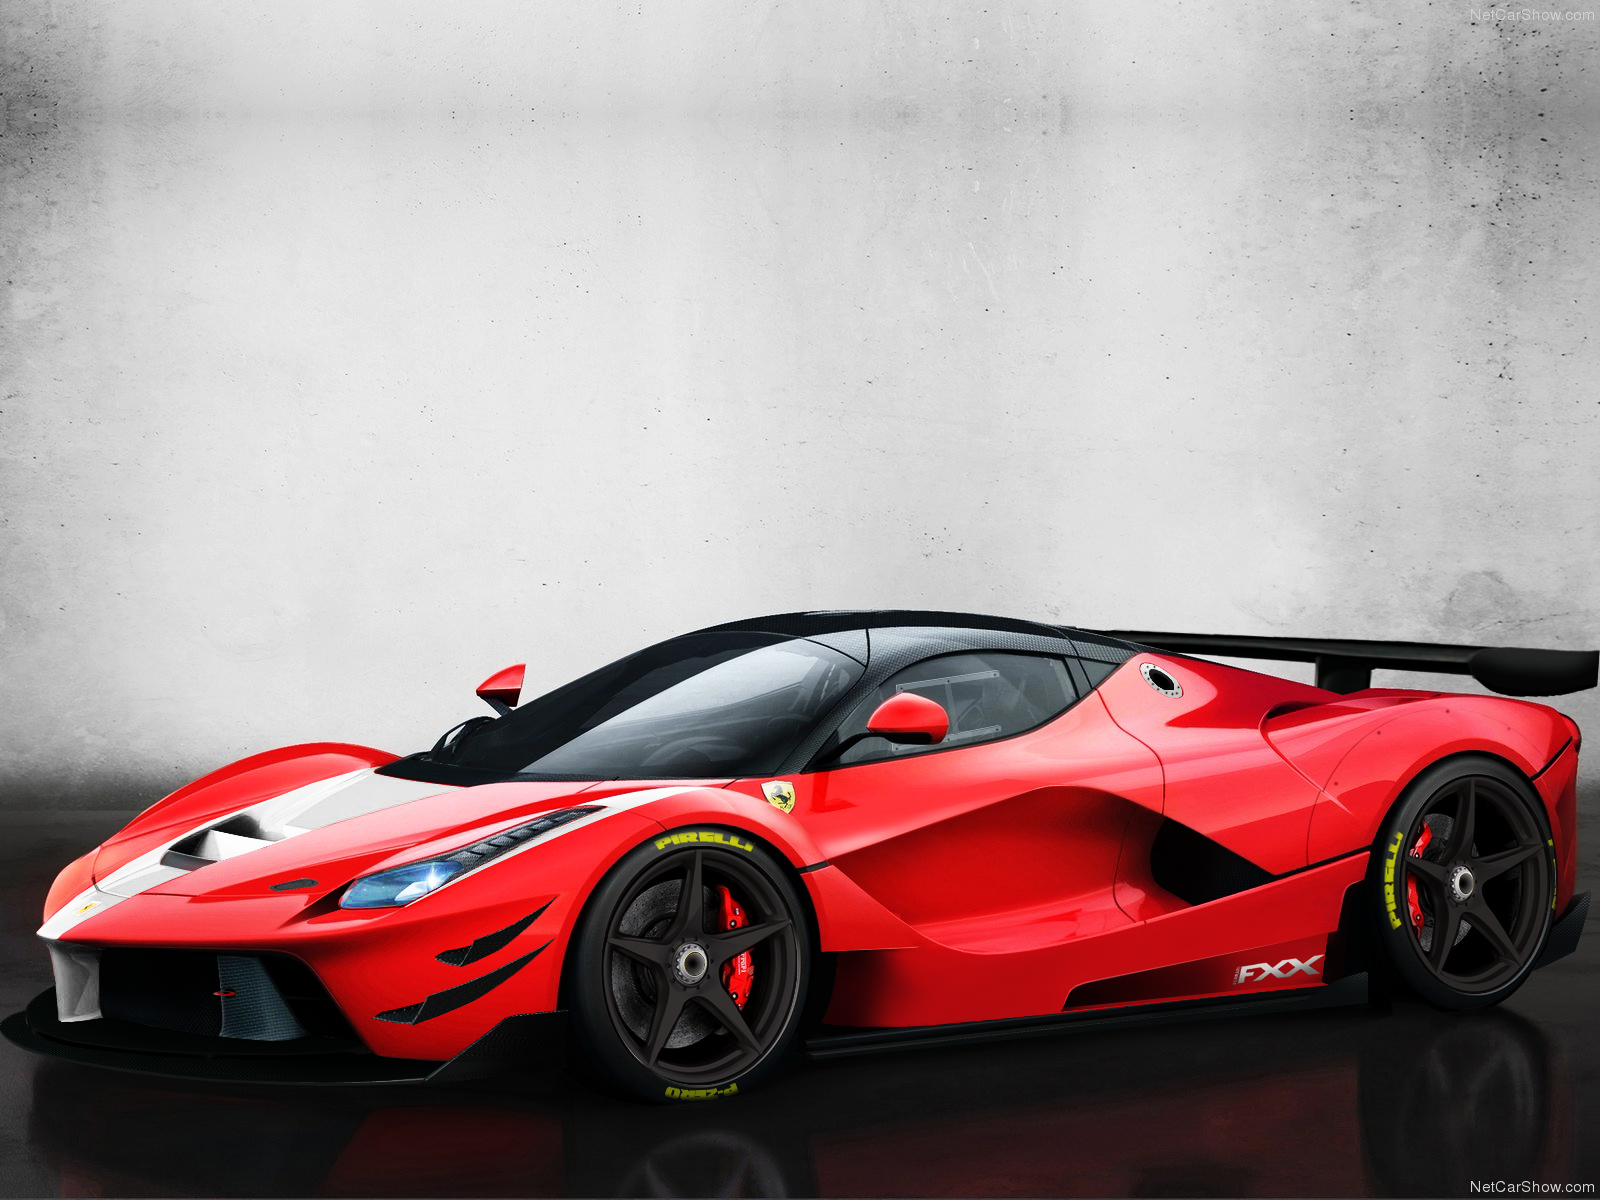 LaFerrari FXX K Rendered as a Spider | Car Wallpapers